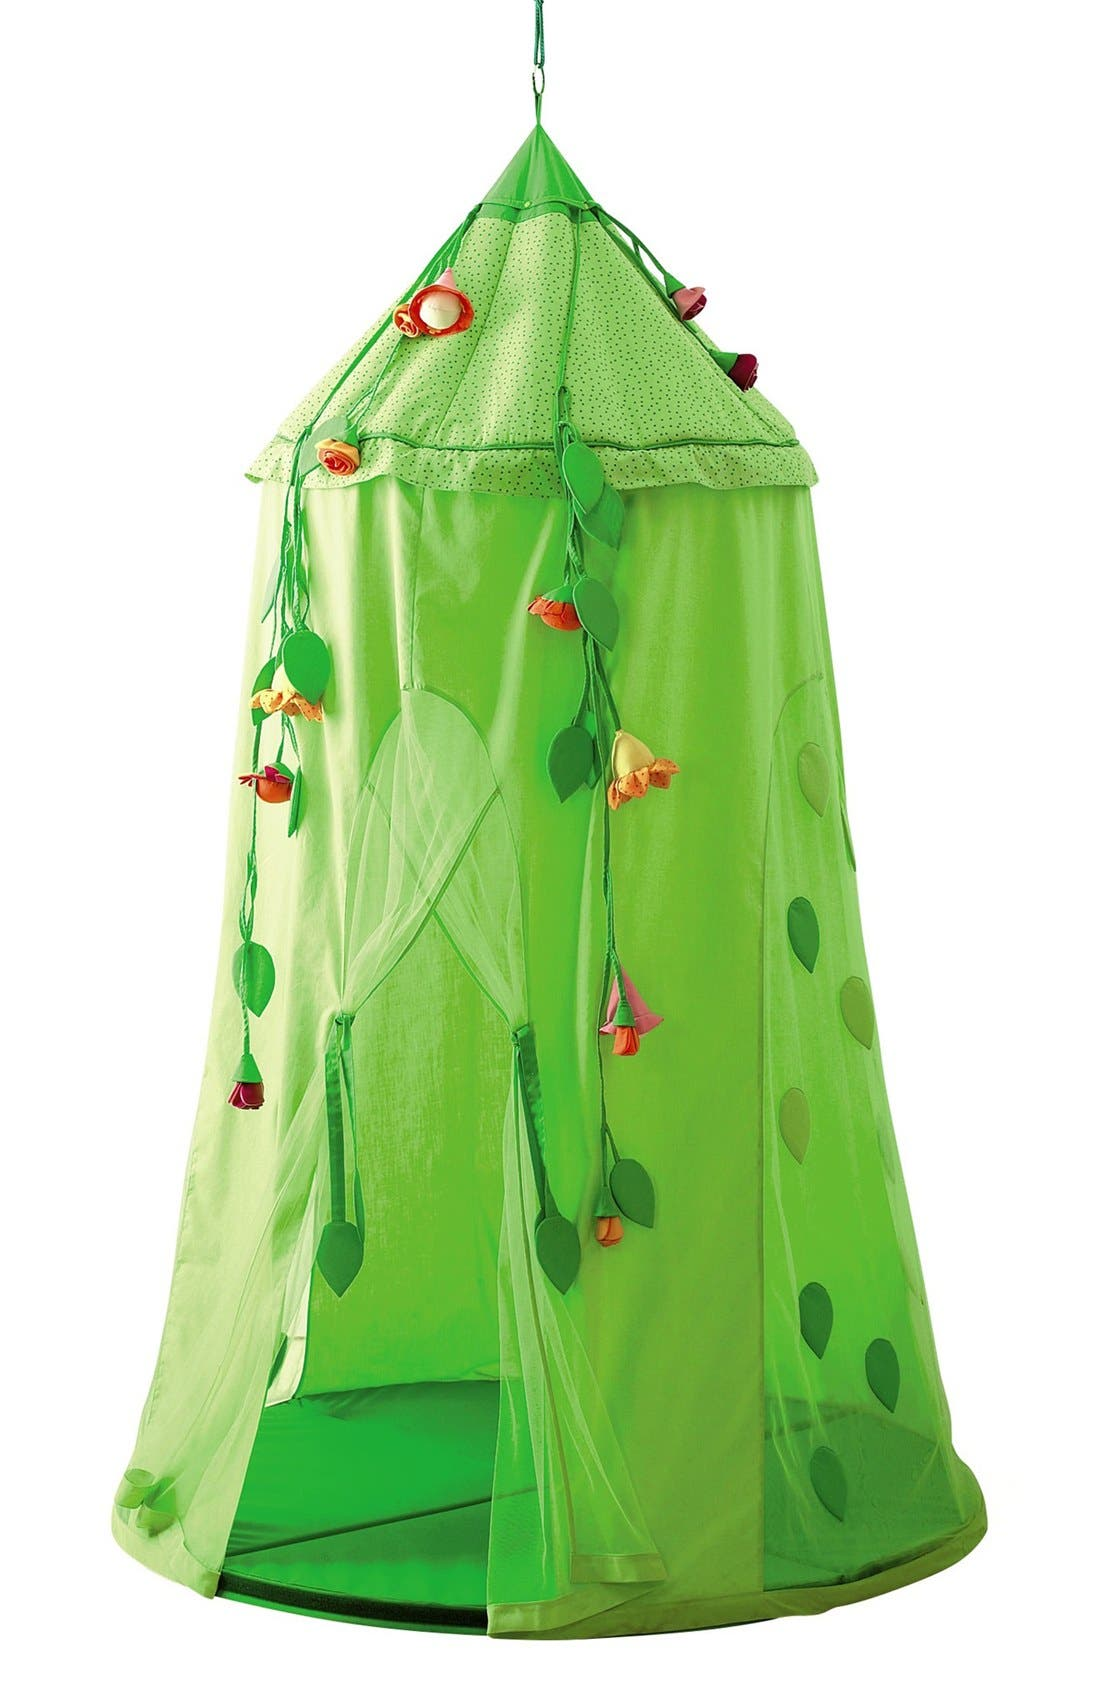 'Blossom Sky' Hanging Play Tent,                             Main thumbnail 1, color,                             Green